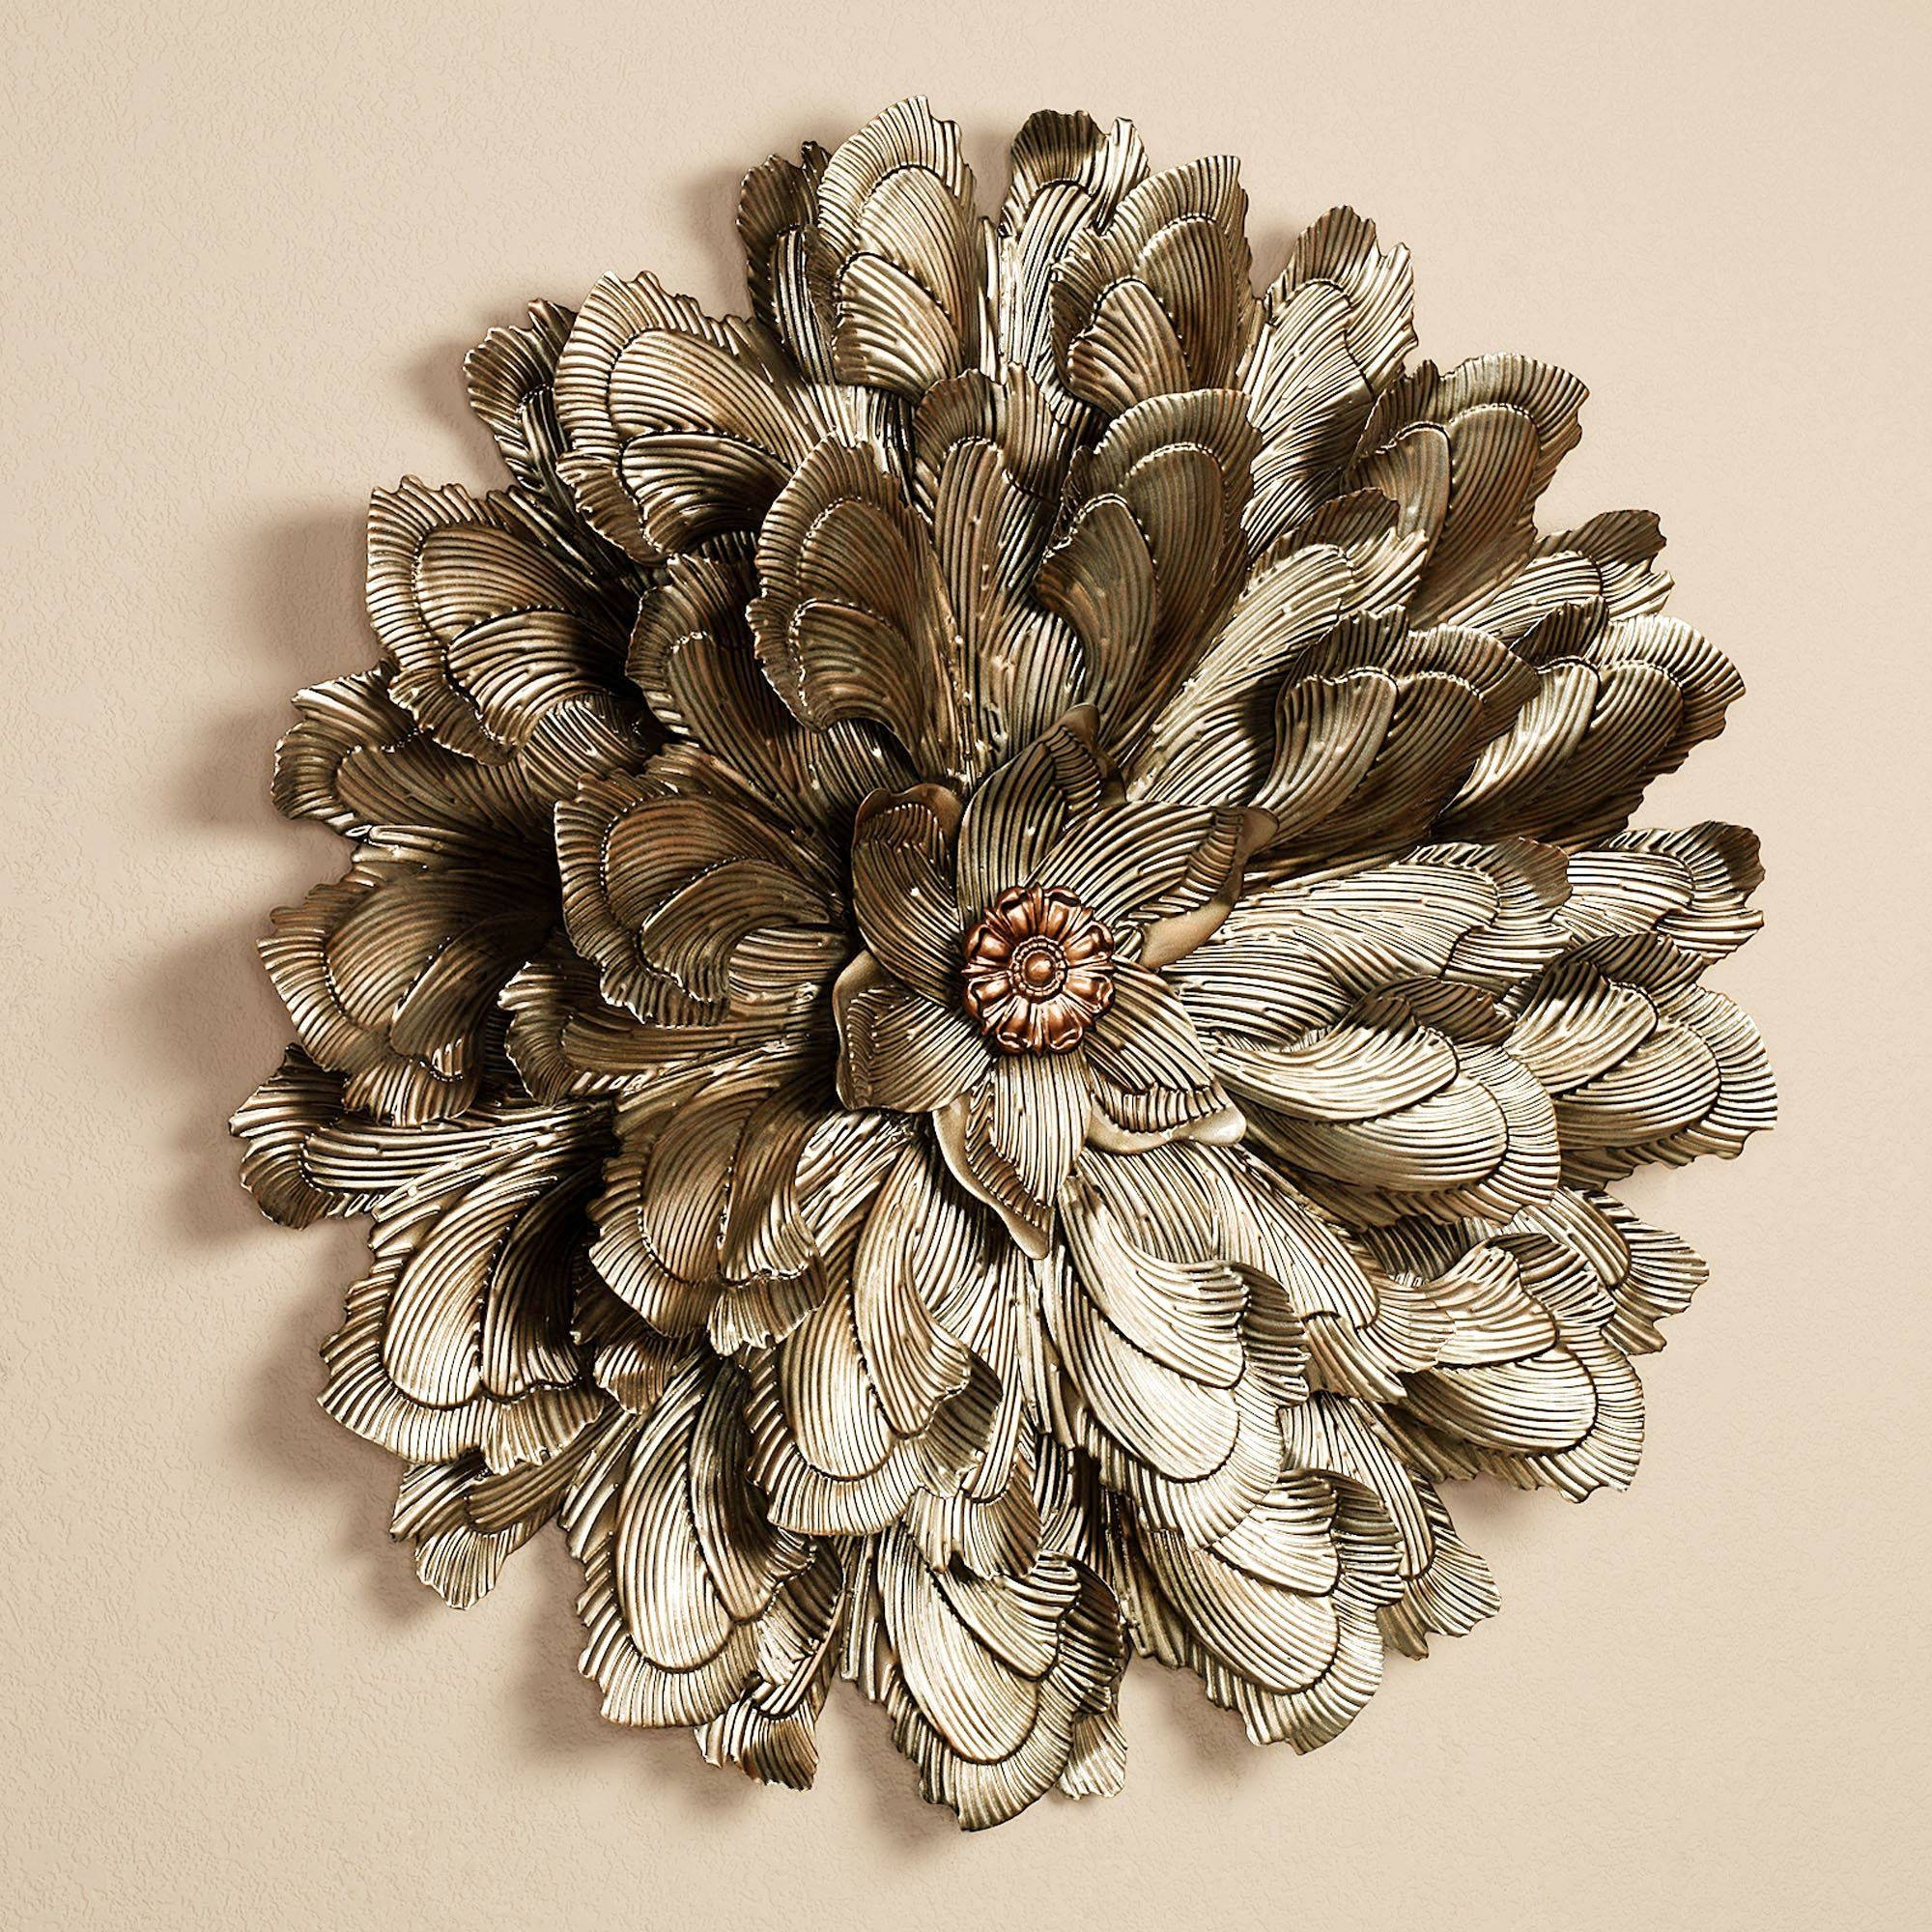 41 Silver Metal Wall Art Flowers, Home Metal Wall Art Wall Decor In Most Up To Date Large Metal Wall Art And Decor (Gallery 18 of 20)